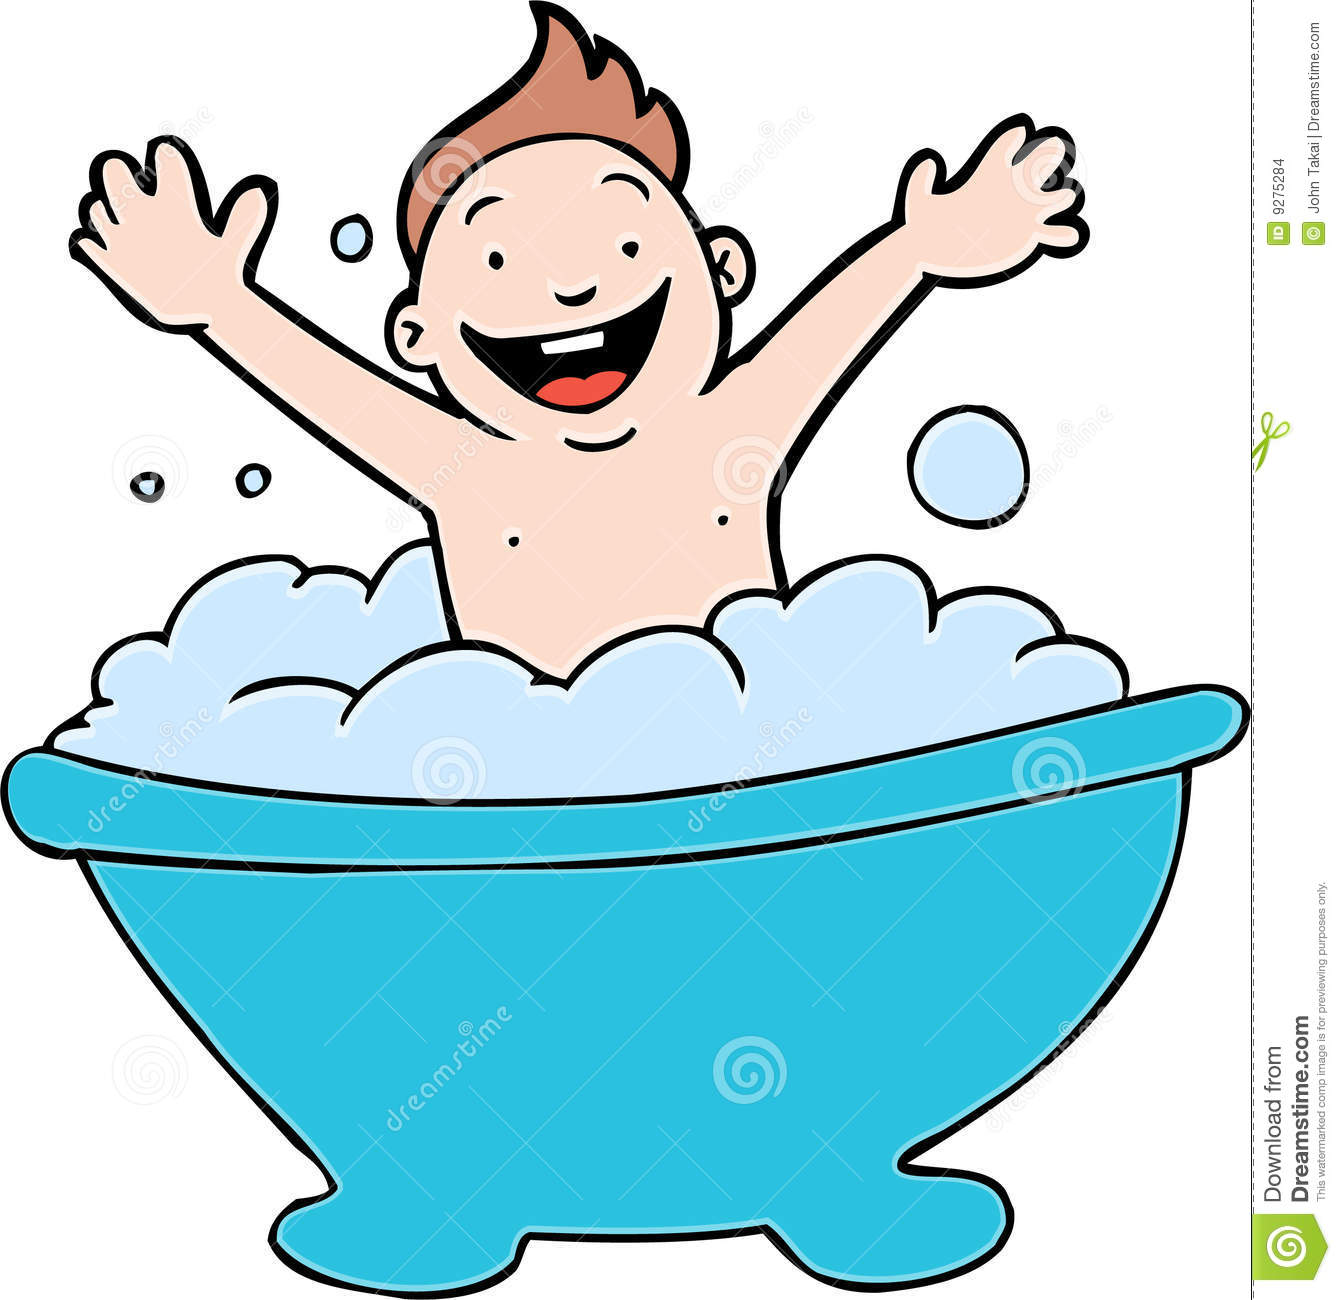 Toilet Clipart For Kids | Free download best Toilet ...